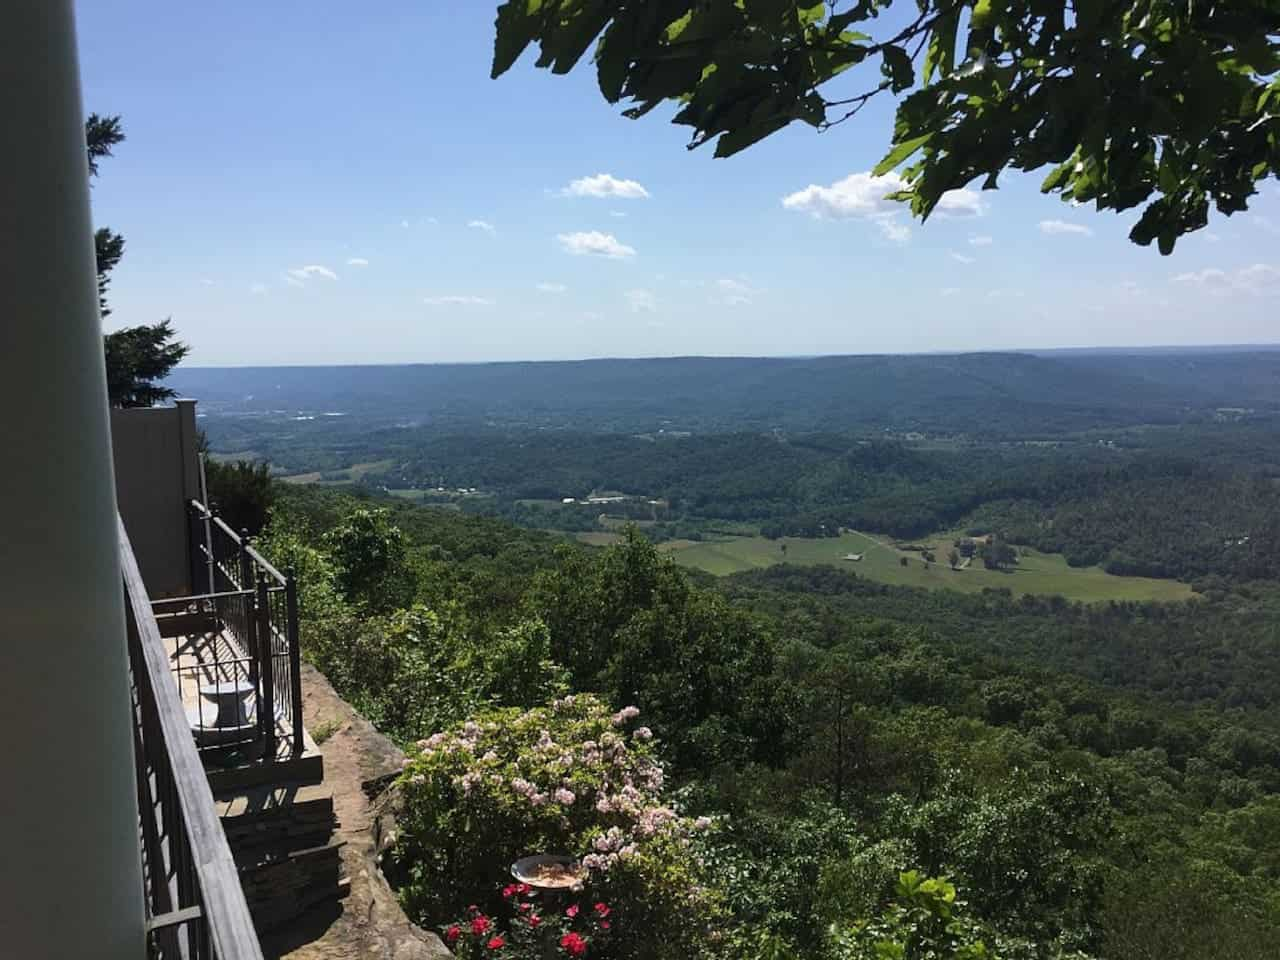 Image of Airbnb rental in Chattanooga